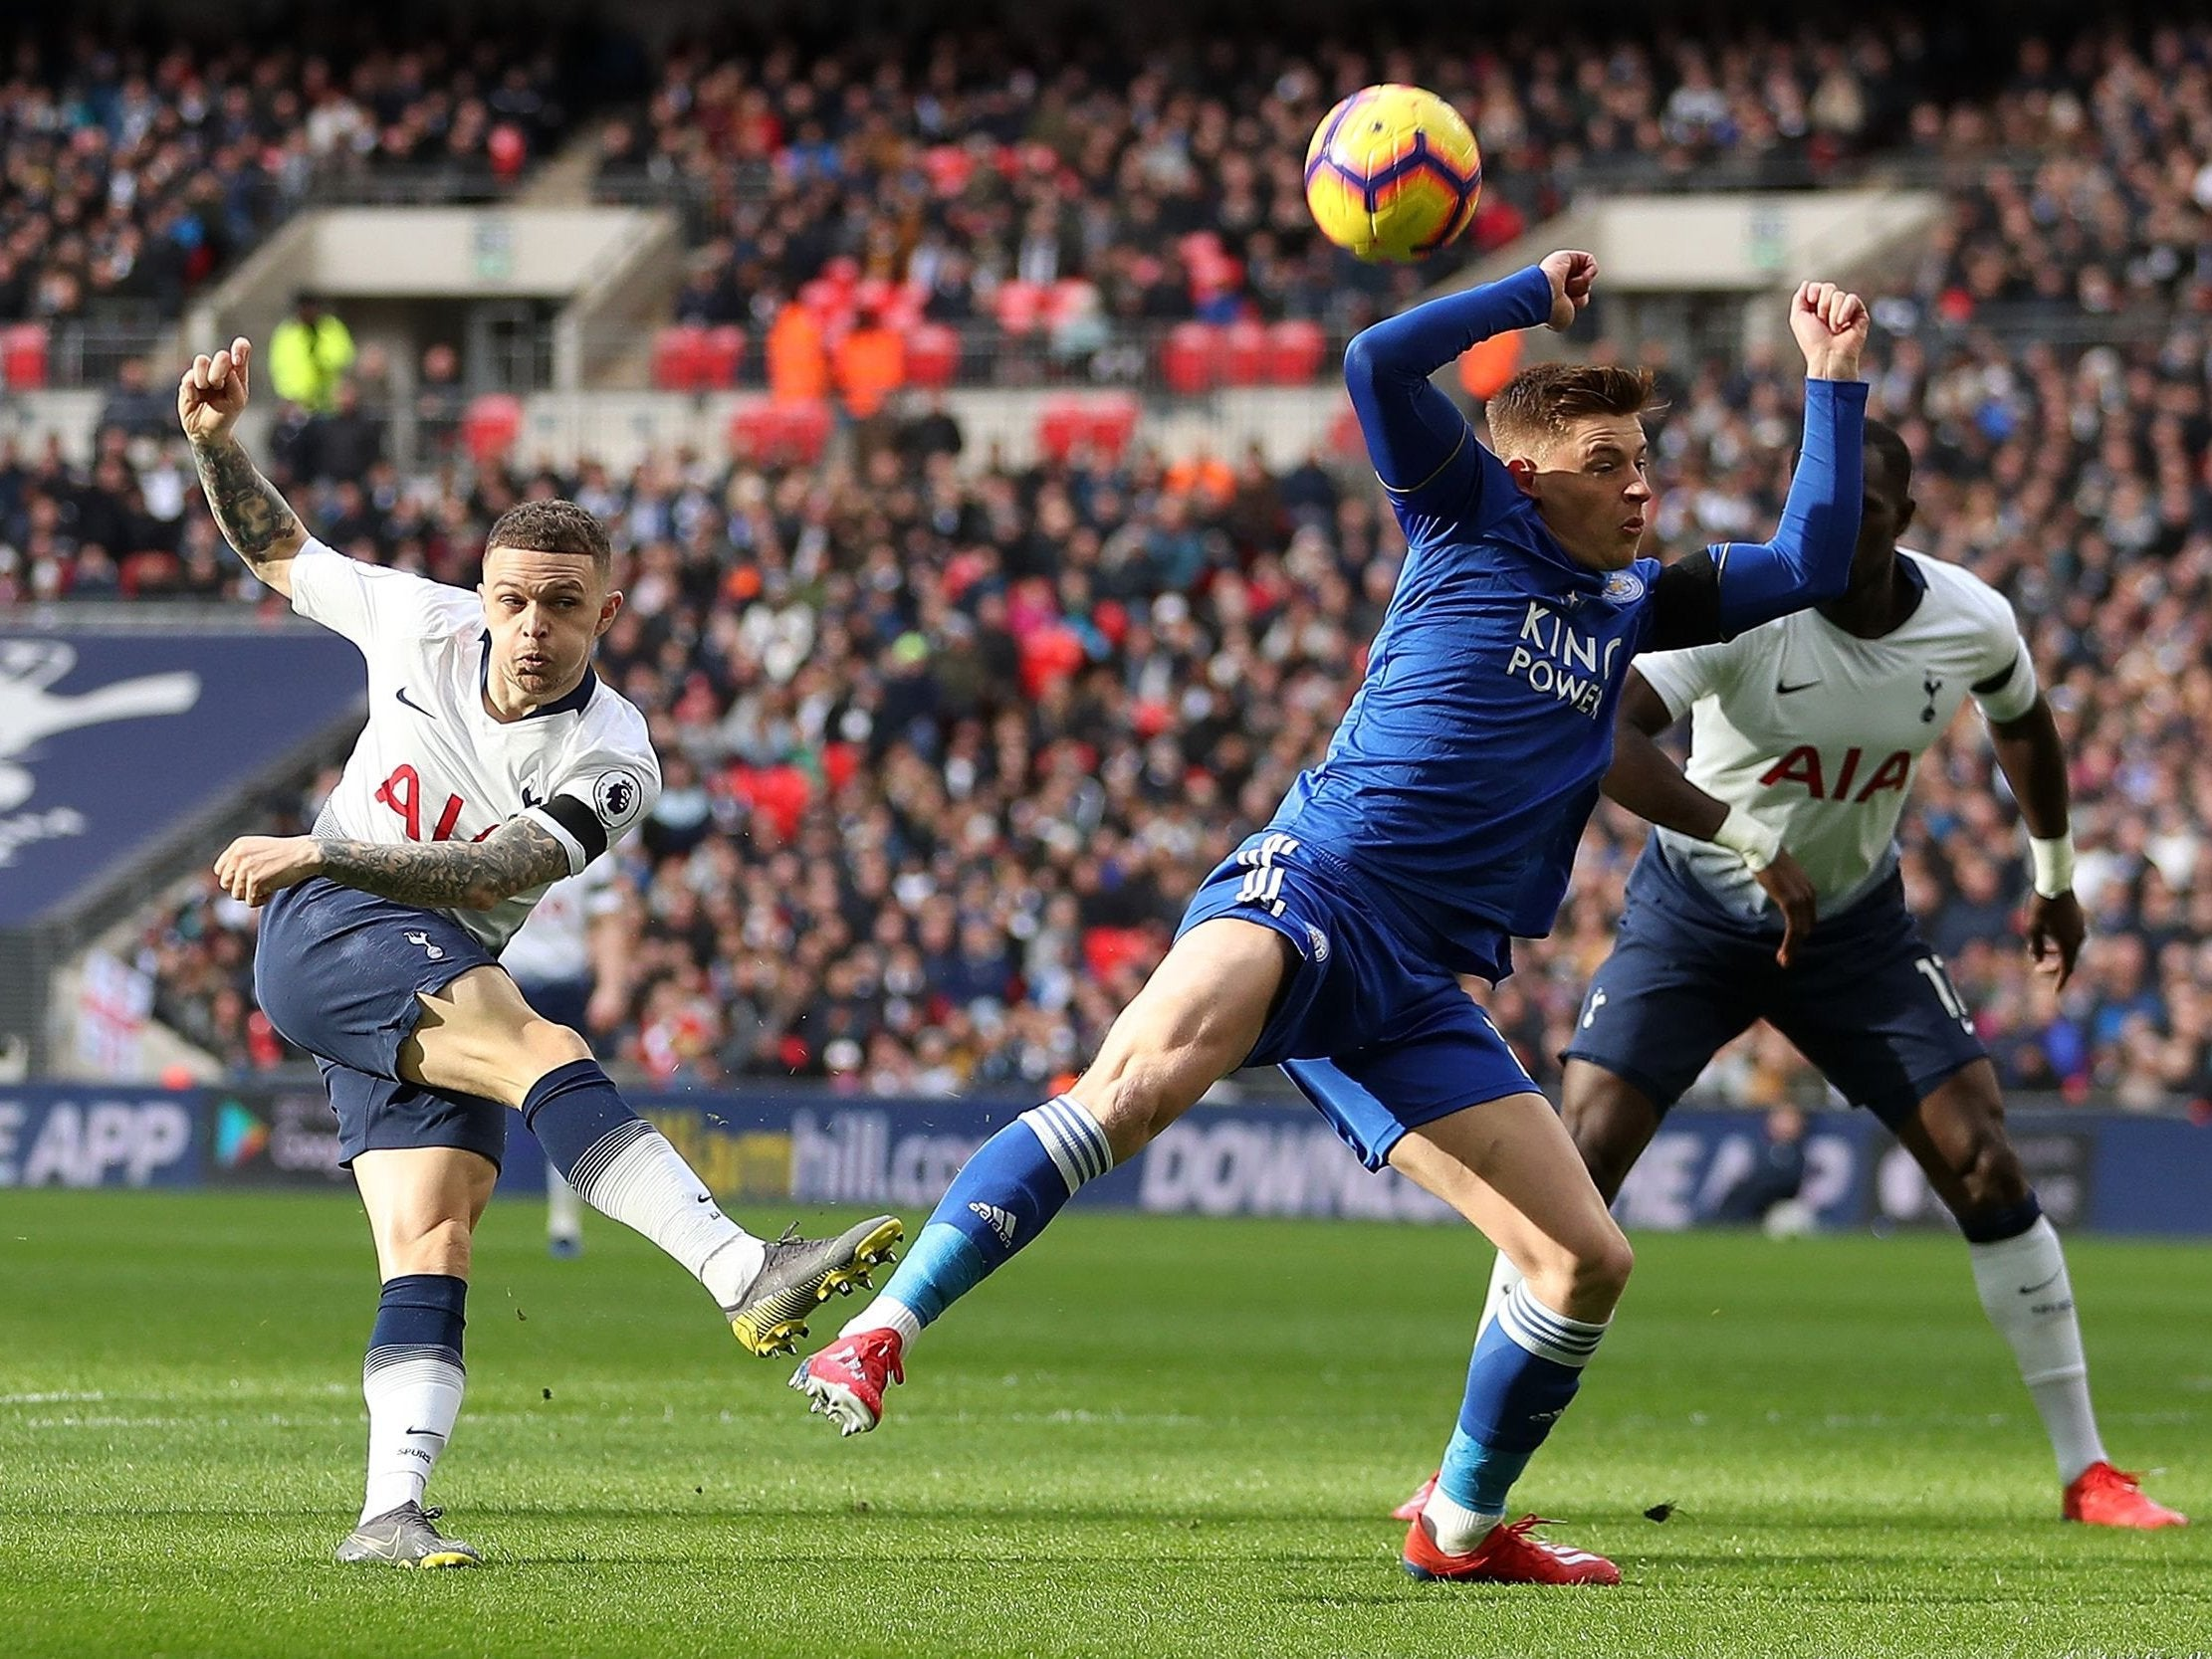 Tottenham Vs Leicester Highlights: Tottenham Vs Leicester City LIVE: Stream, Score, Goals And